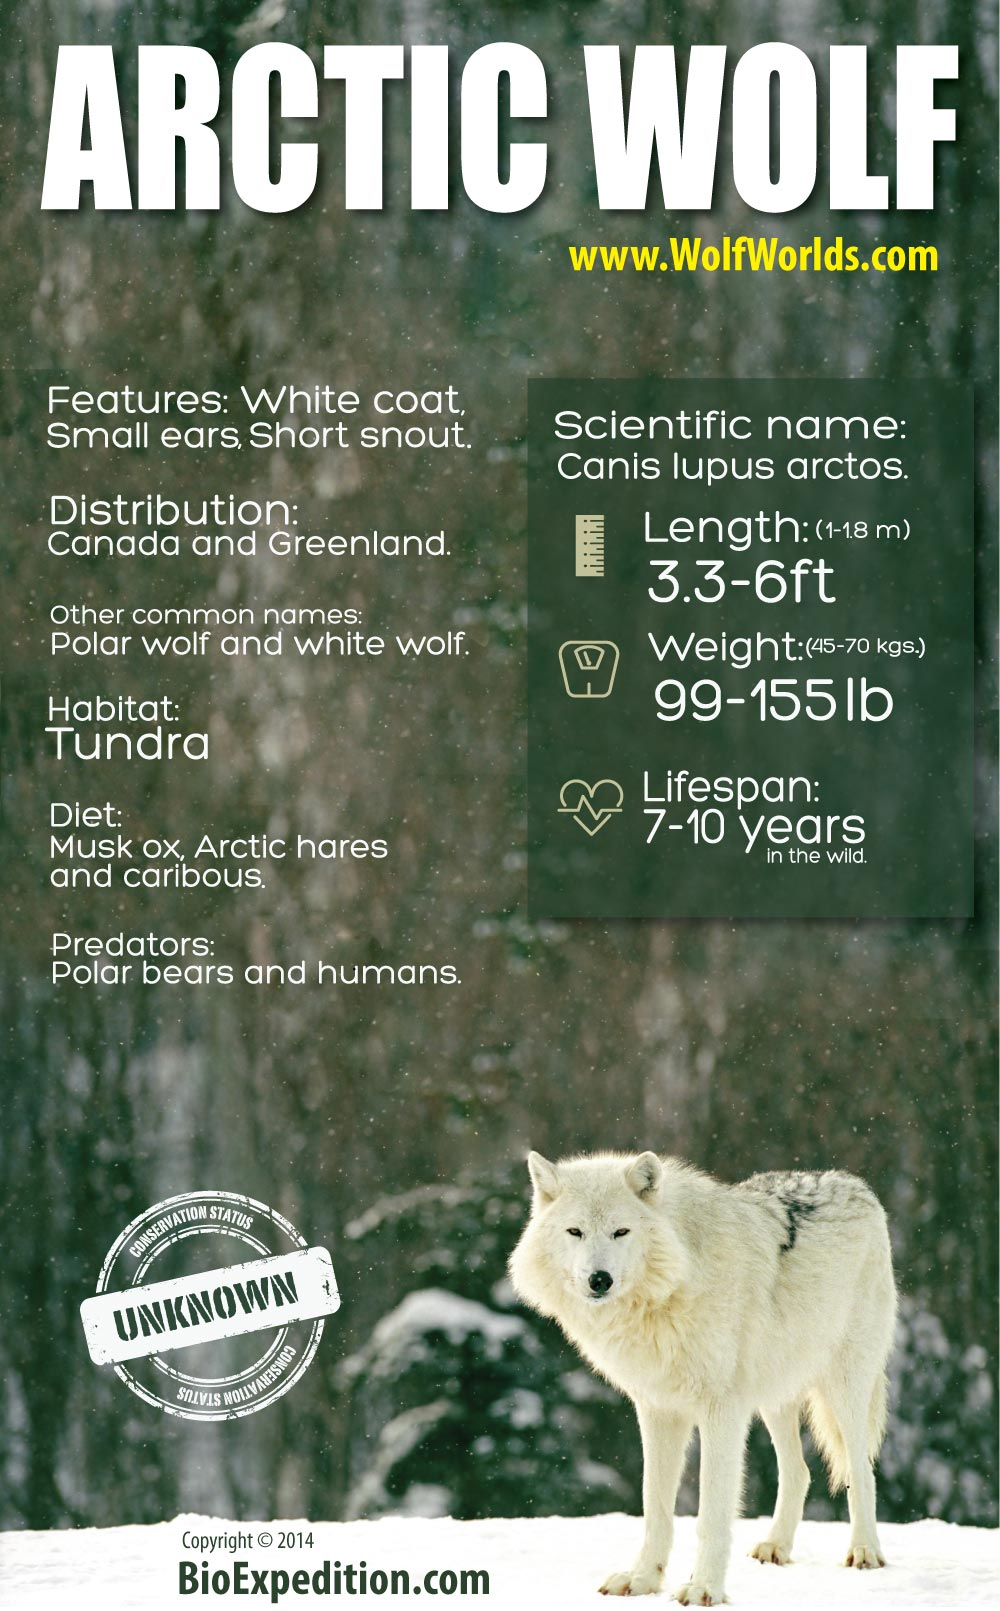 1000 images about wolves on pinterest white wolves arctic wolf and - Arctic Wolf Habitat For Pinterest